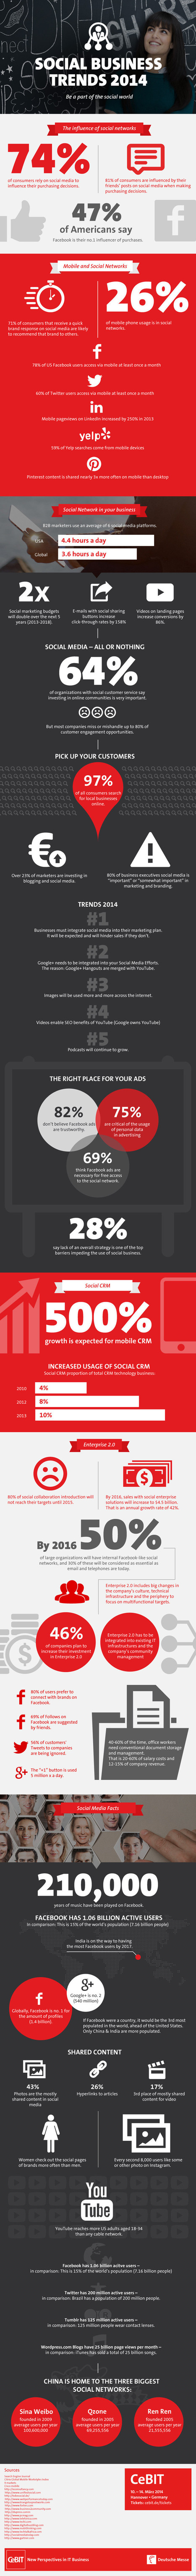 Social Business Trends 2014 [INFOGRAPHIC] | Understanding Social Media | Scoop.it